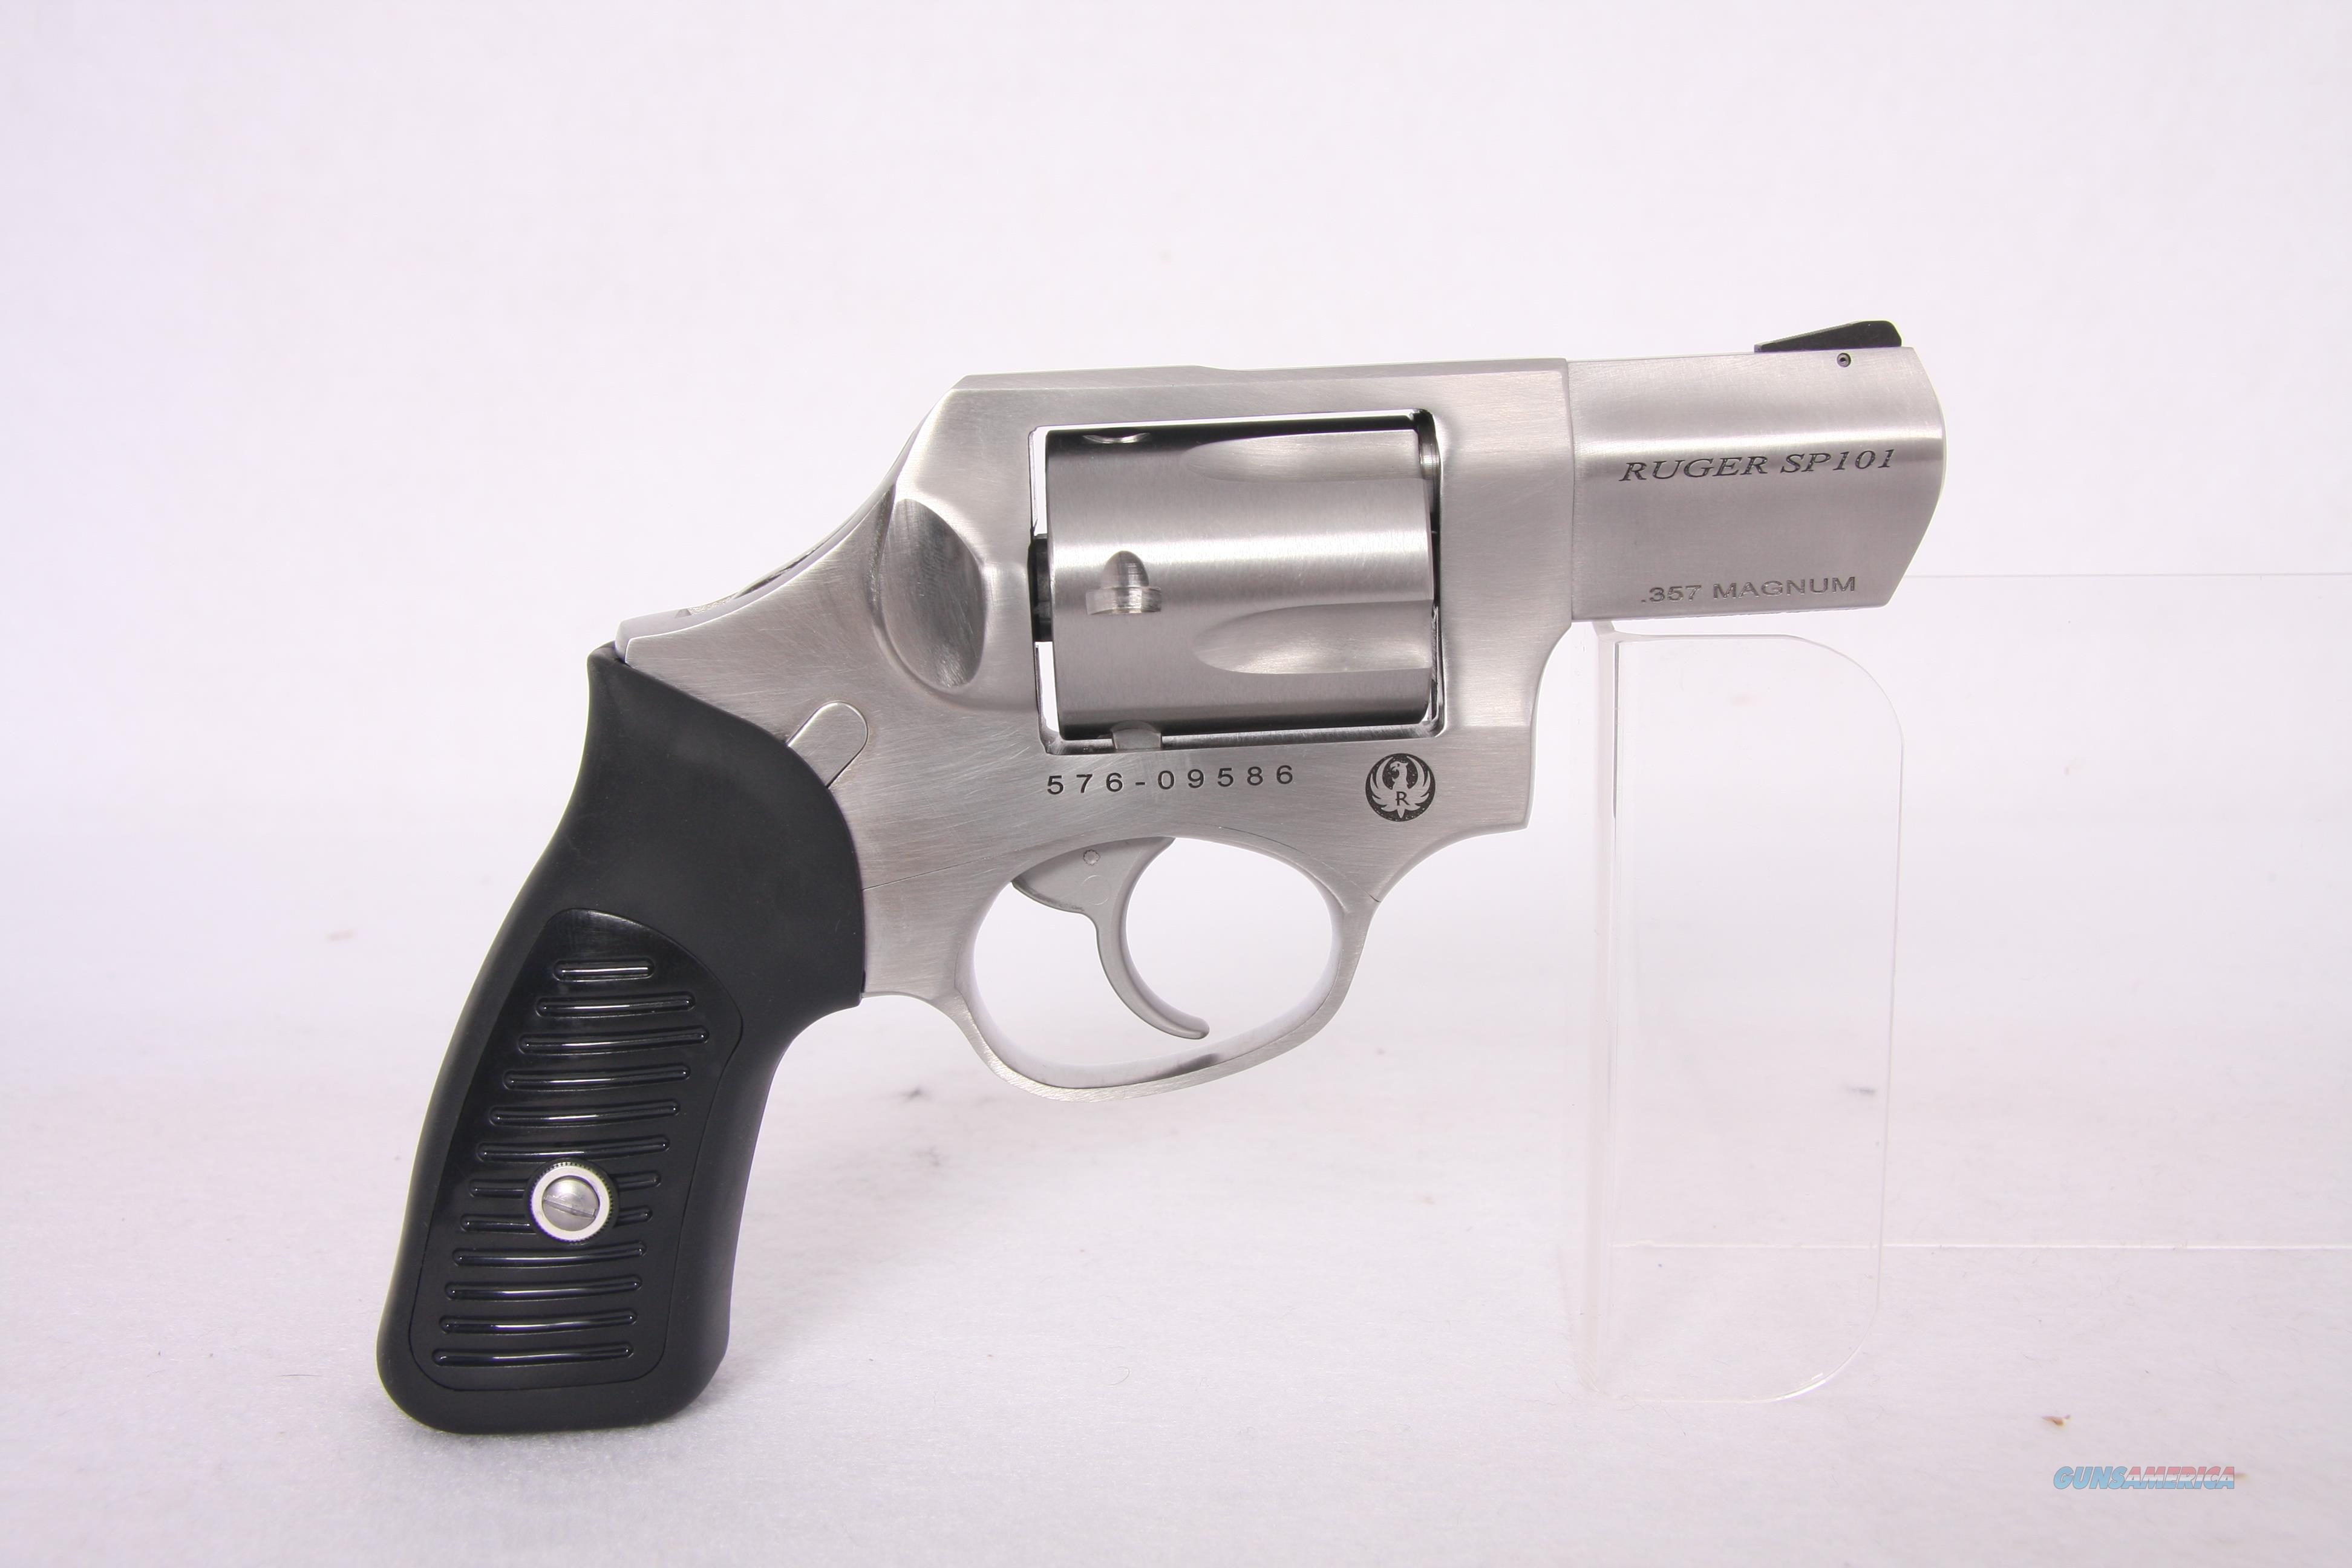 Ruger Sp101 .357mag Spurless  Guns > Pistols > Ruger Double Action Revolver > SP101 Type